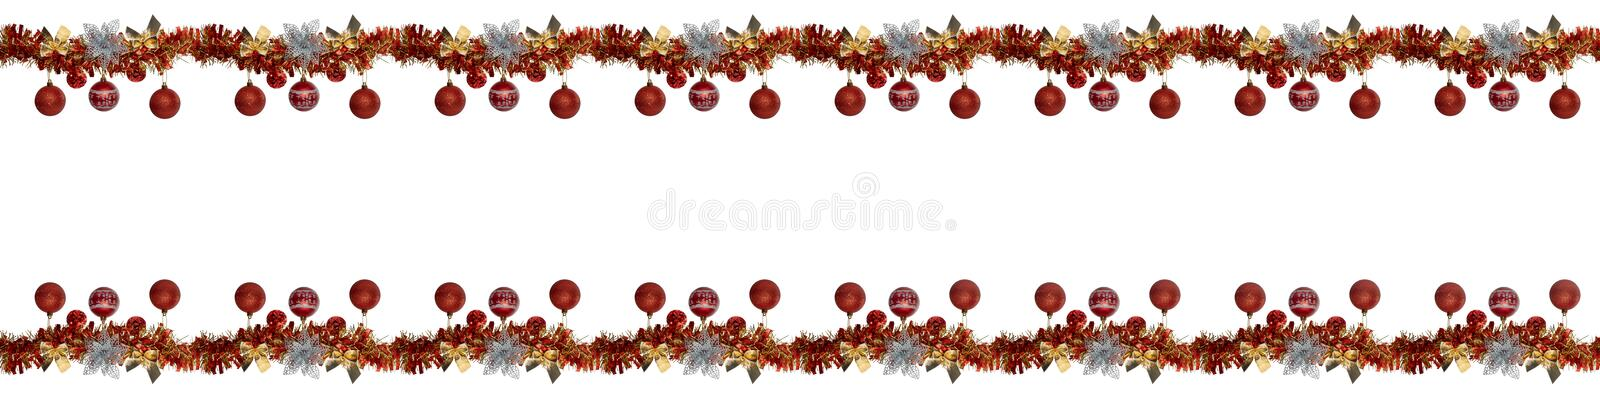 Decor  border Christmas garland bows silver flower Christmas tree red balls isolated white. Decor for Christmas royalty free stock image